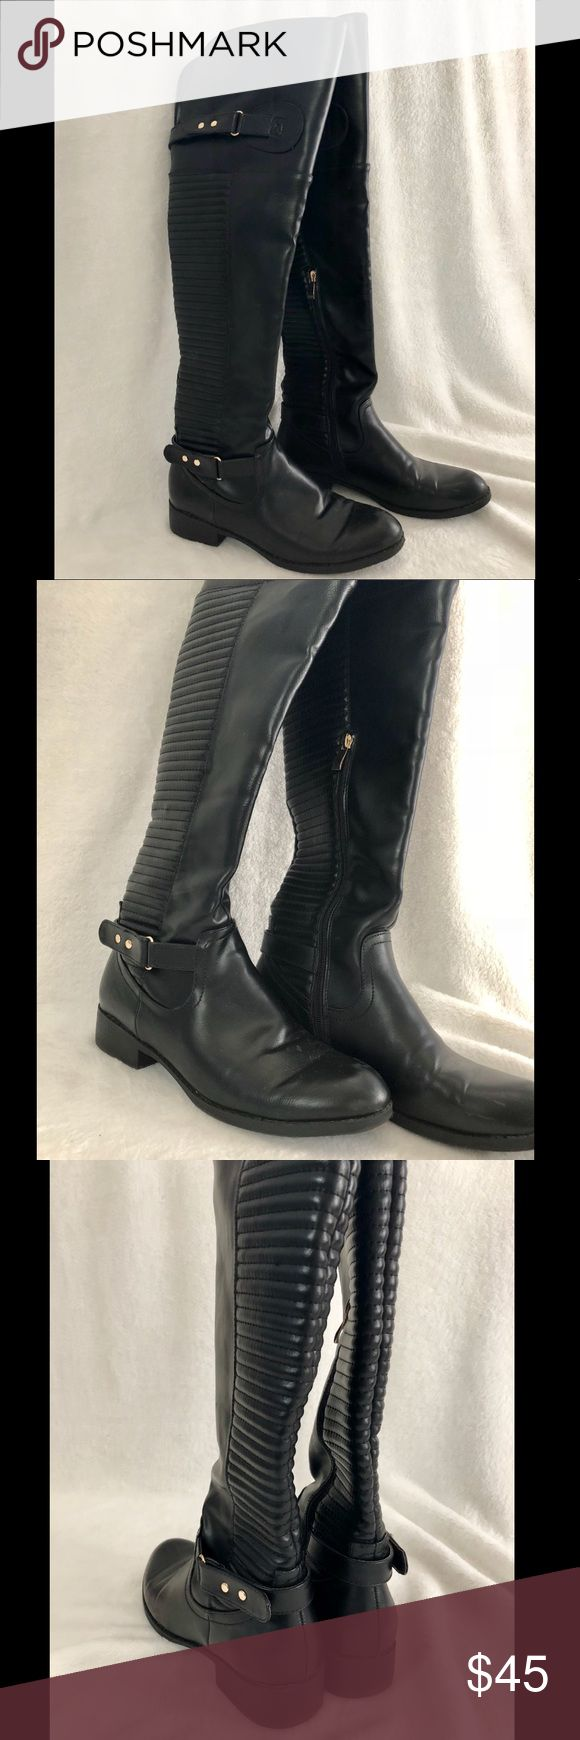 Black over the knee boots Black over the knee boots. Worn 2 times at most. I'm 5'1 for reference! Same pair in cognac also for sale! Offers always welcome. *If the listing is up, is IS still available!* Shoes Over the Knee Boots